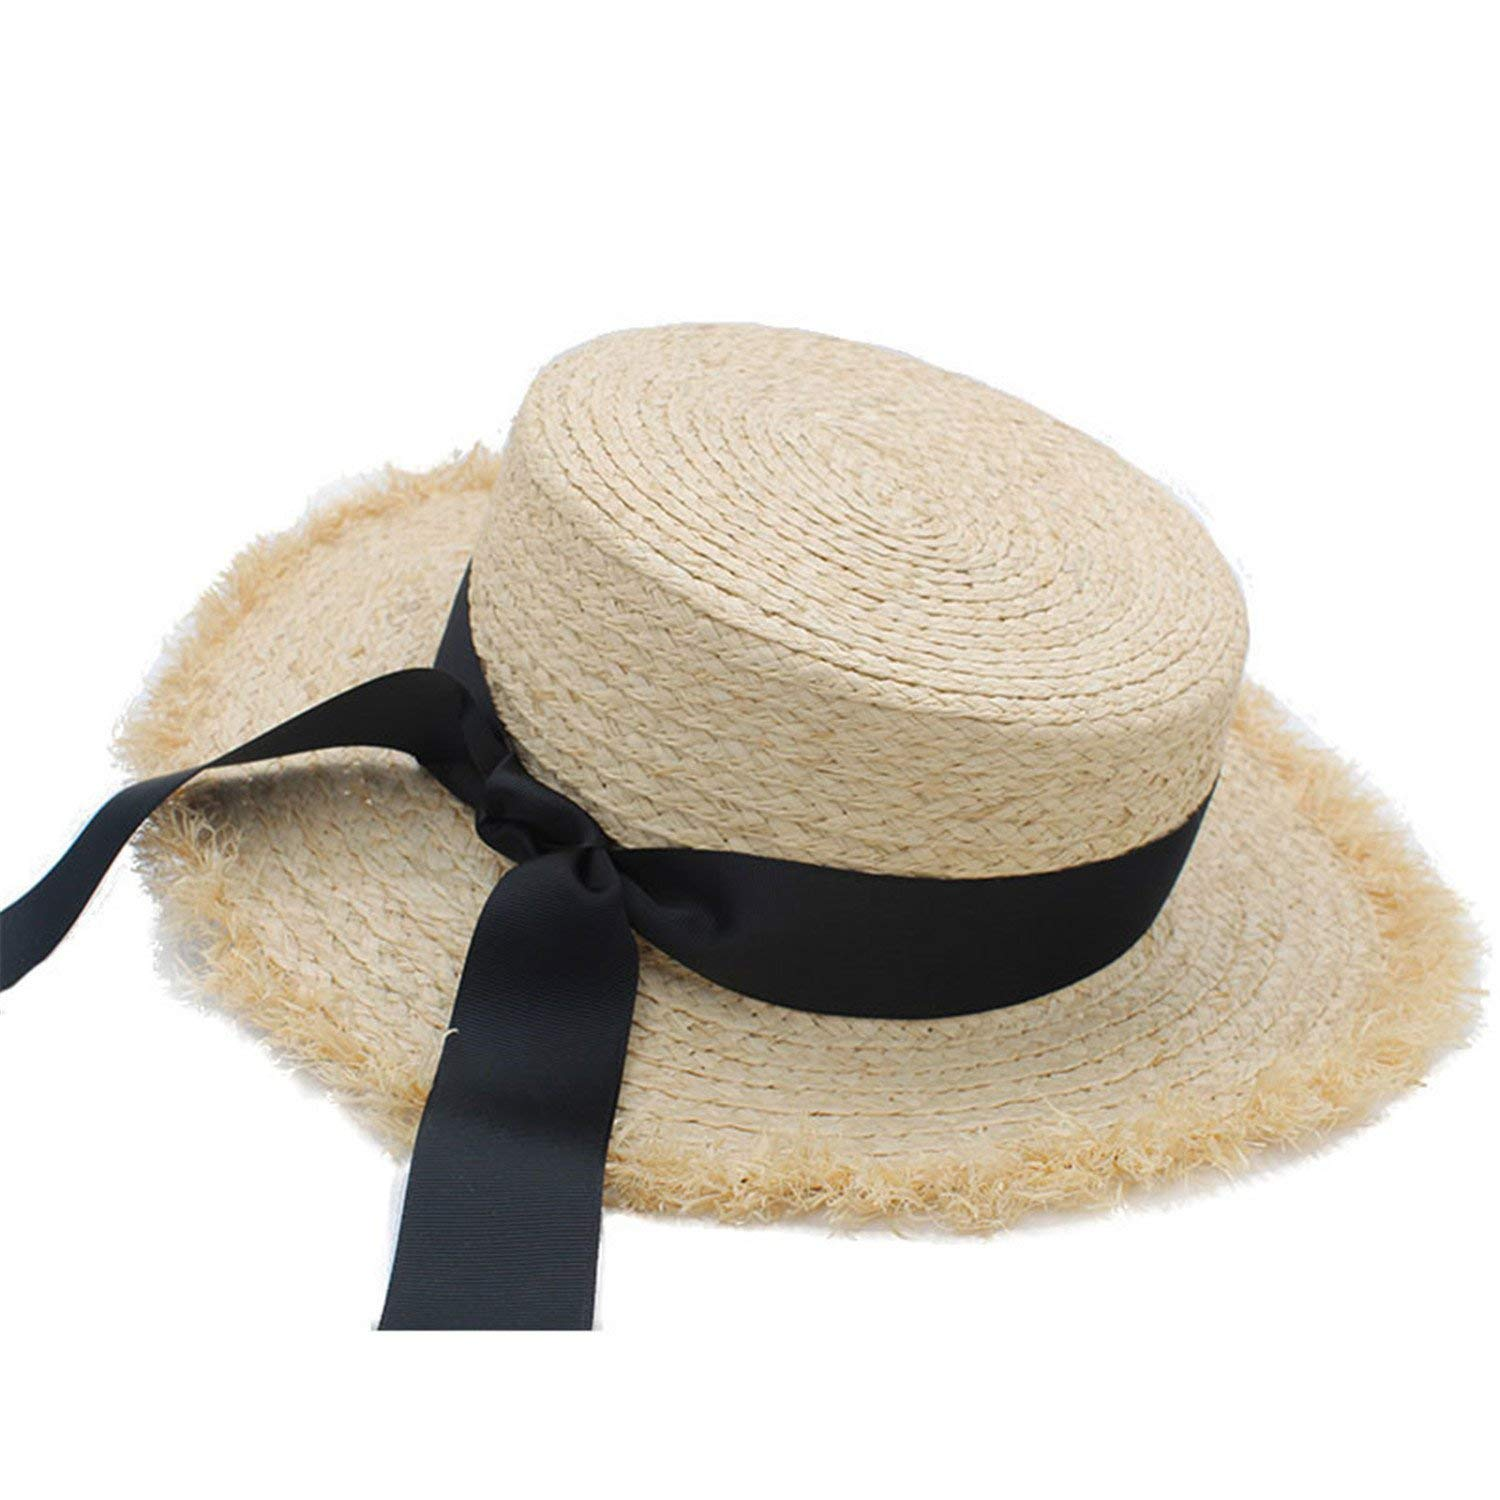 Gail Jonson Summer Adult Solid Casual Straw Sun Beach Hat Summer Hats for Women Boater Raffia Hat Bow